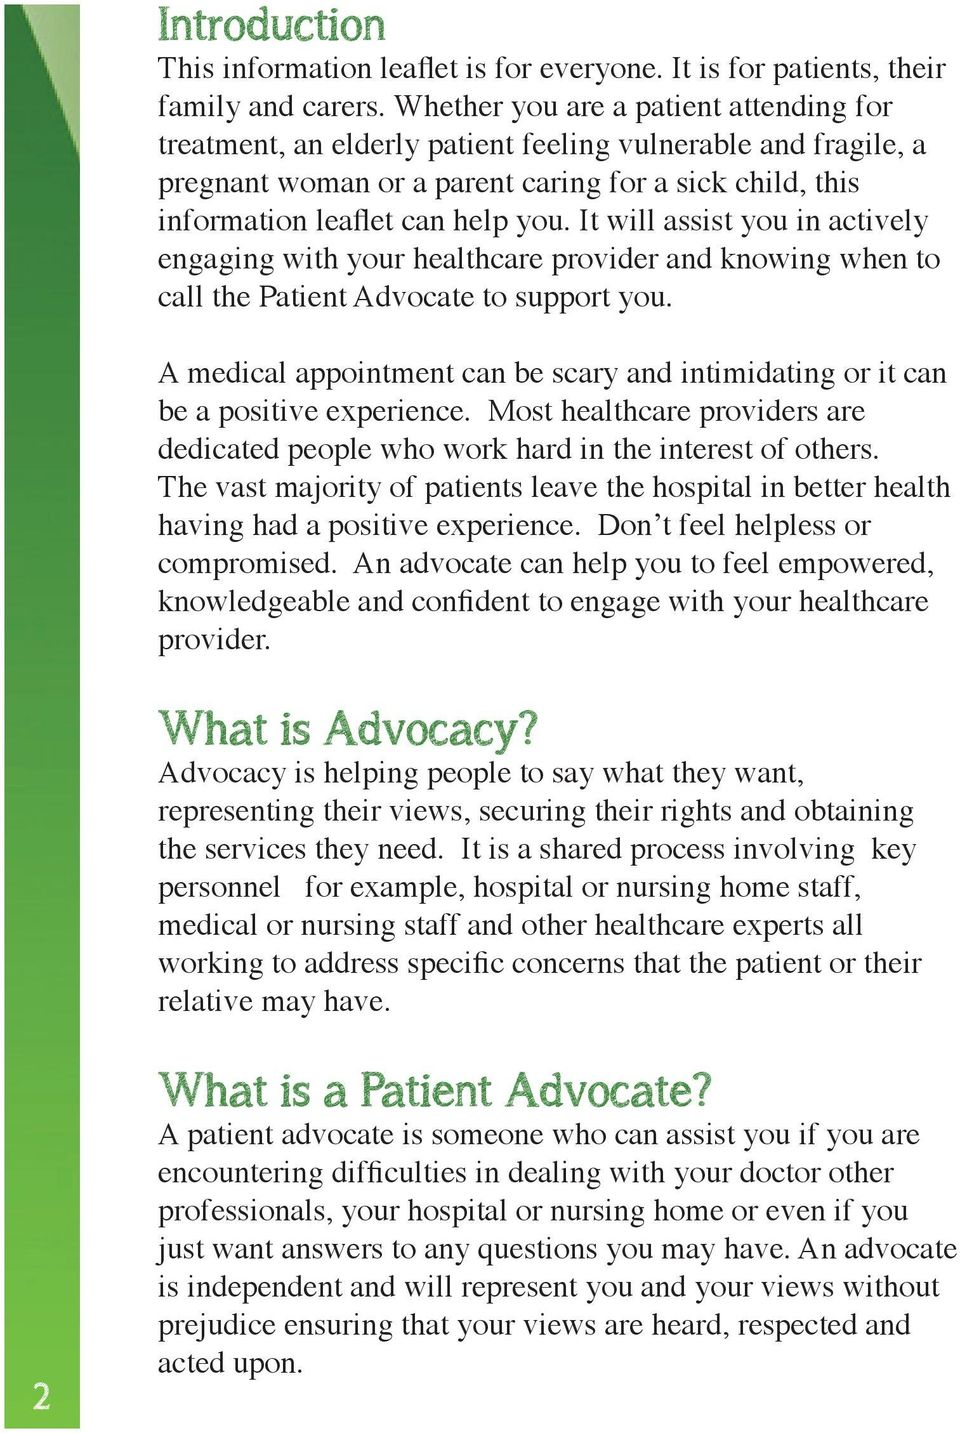 It will assist you in actively engaging with your healthcare provider and knowing when to call the Patient Advocate to support you.